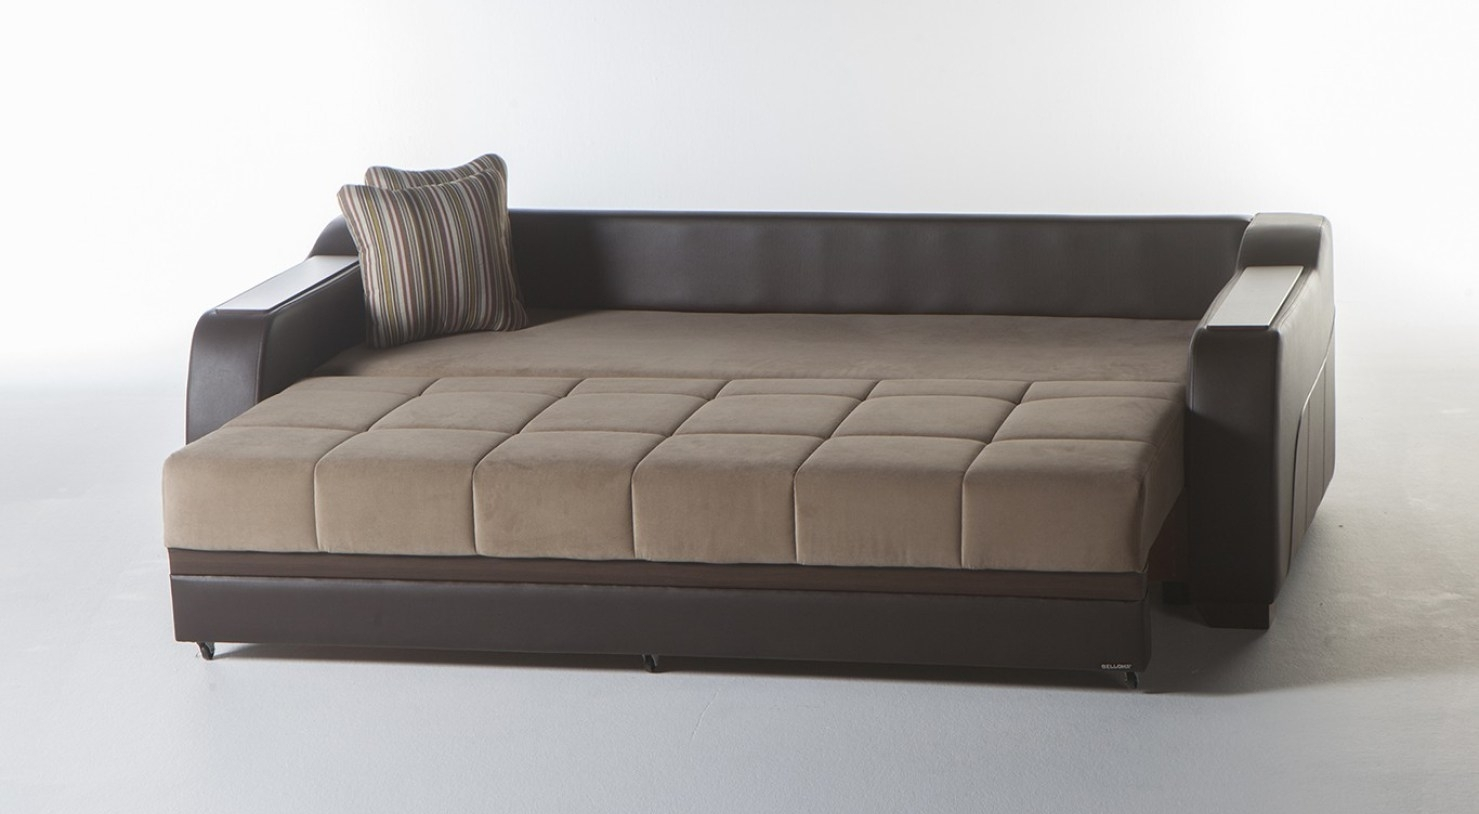 Hideaway Sofa Bed Philippines | Catosfera Intended For Sectional Sofas In Philippines (View 4 of 10)